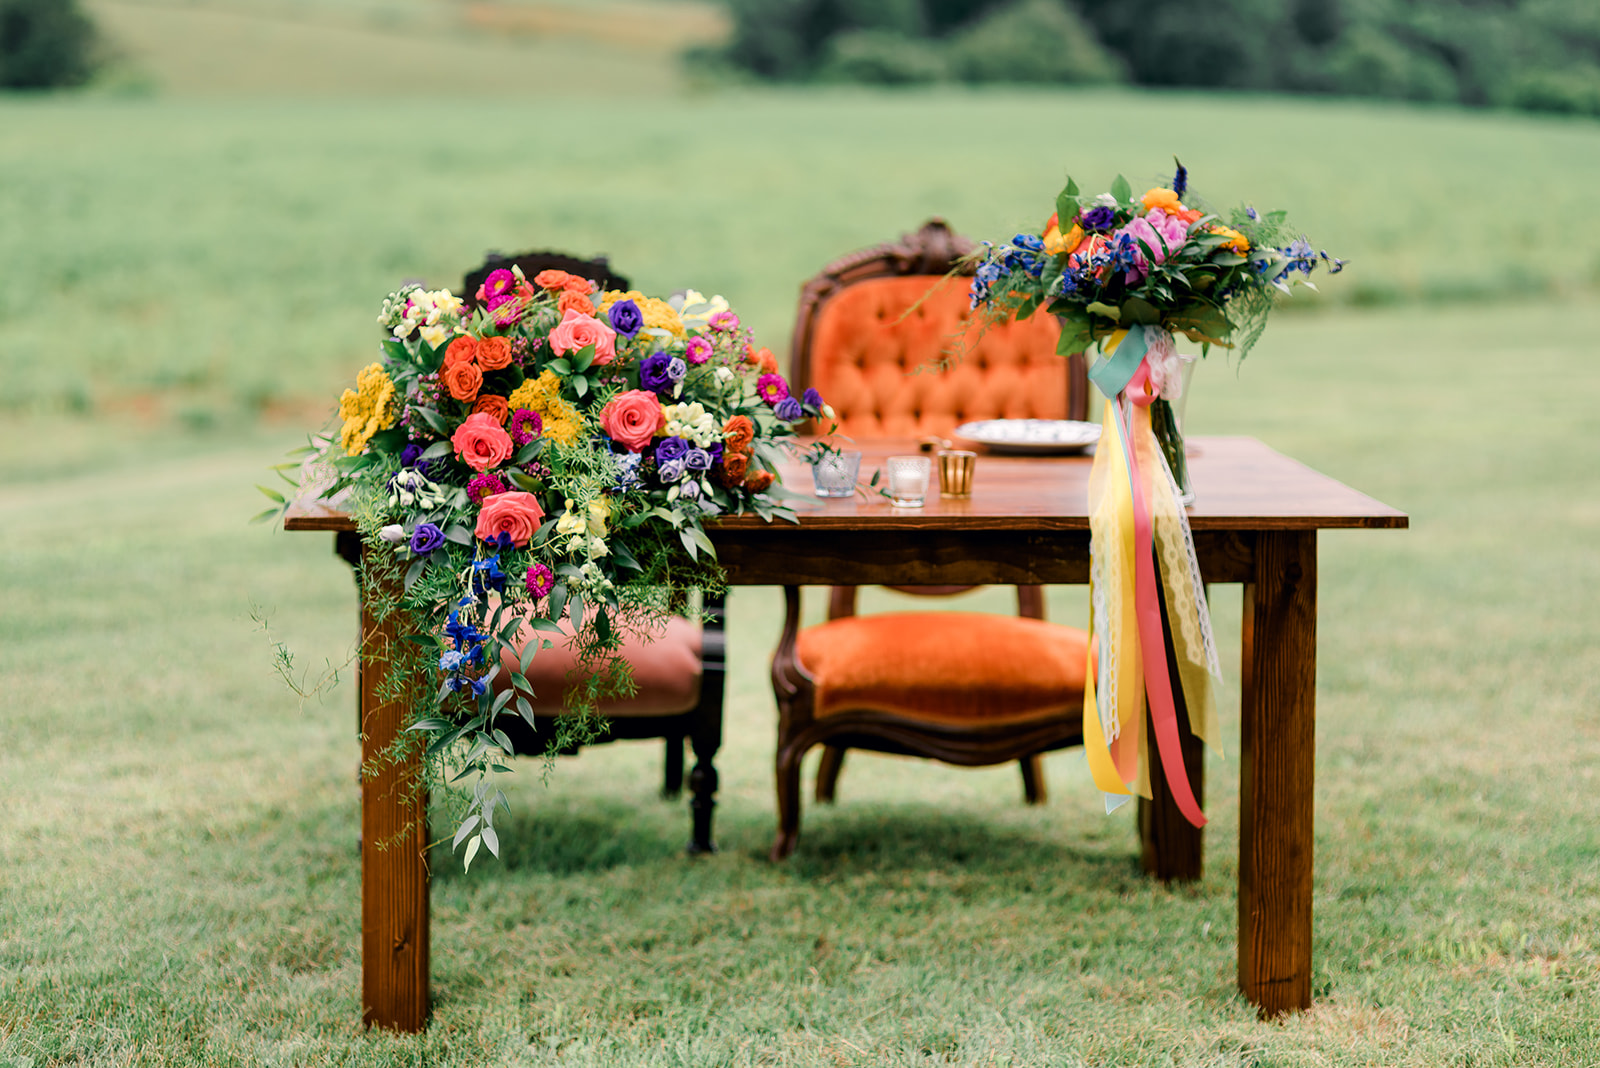 Fun & Colorful Barn Wedding Sweetheart Table at Heaven Sent Farms in Avella Dawn Derbyshire Photography  (6).jpg